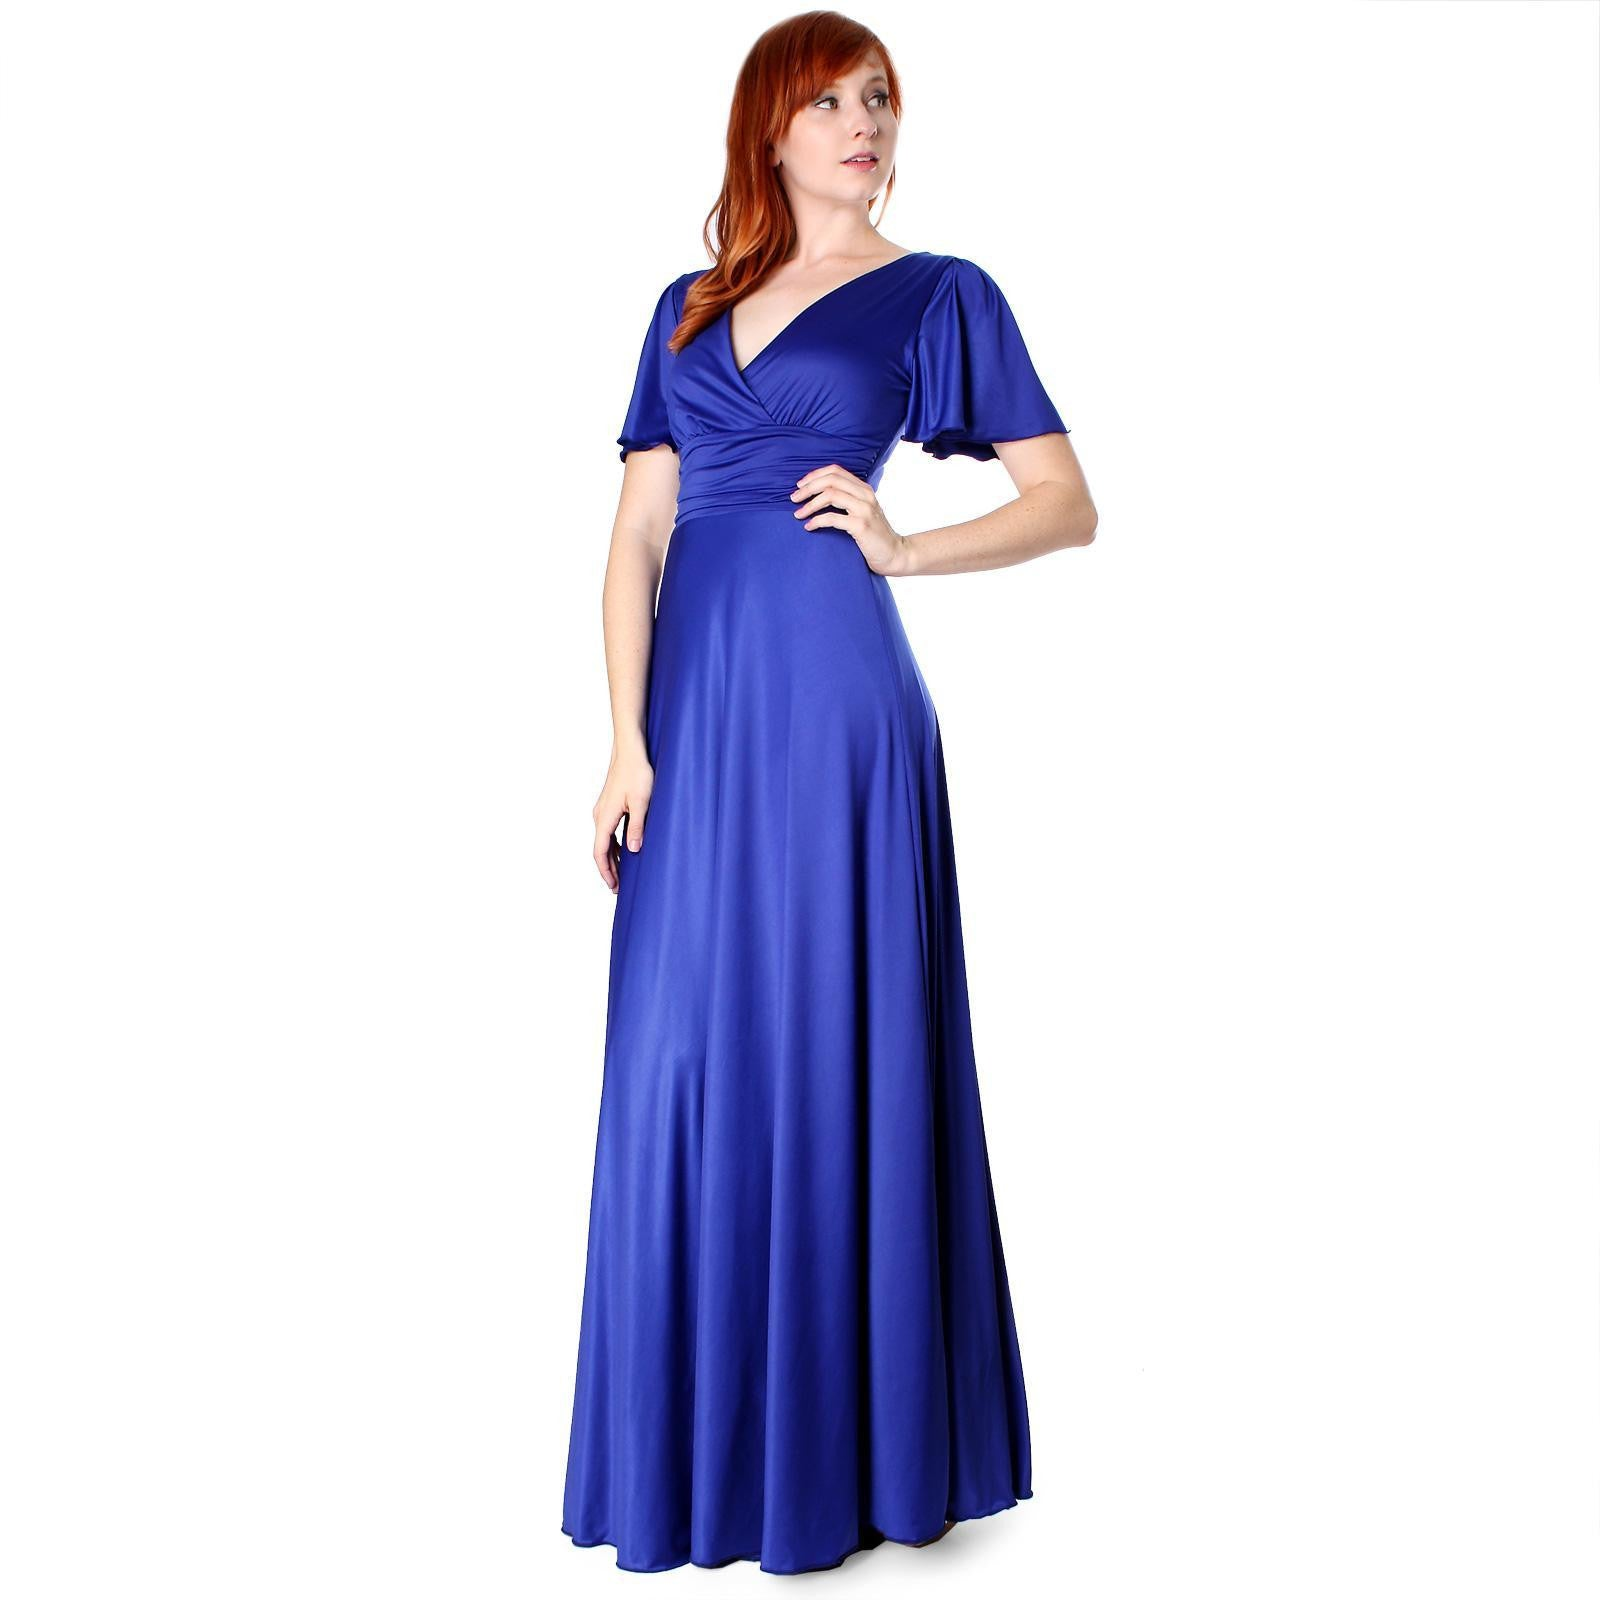 Evanese Women's Shiny Venezian Long Evening Dress with Sleeves - ellemore.com